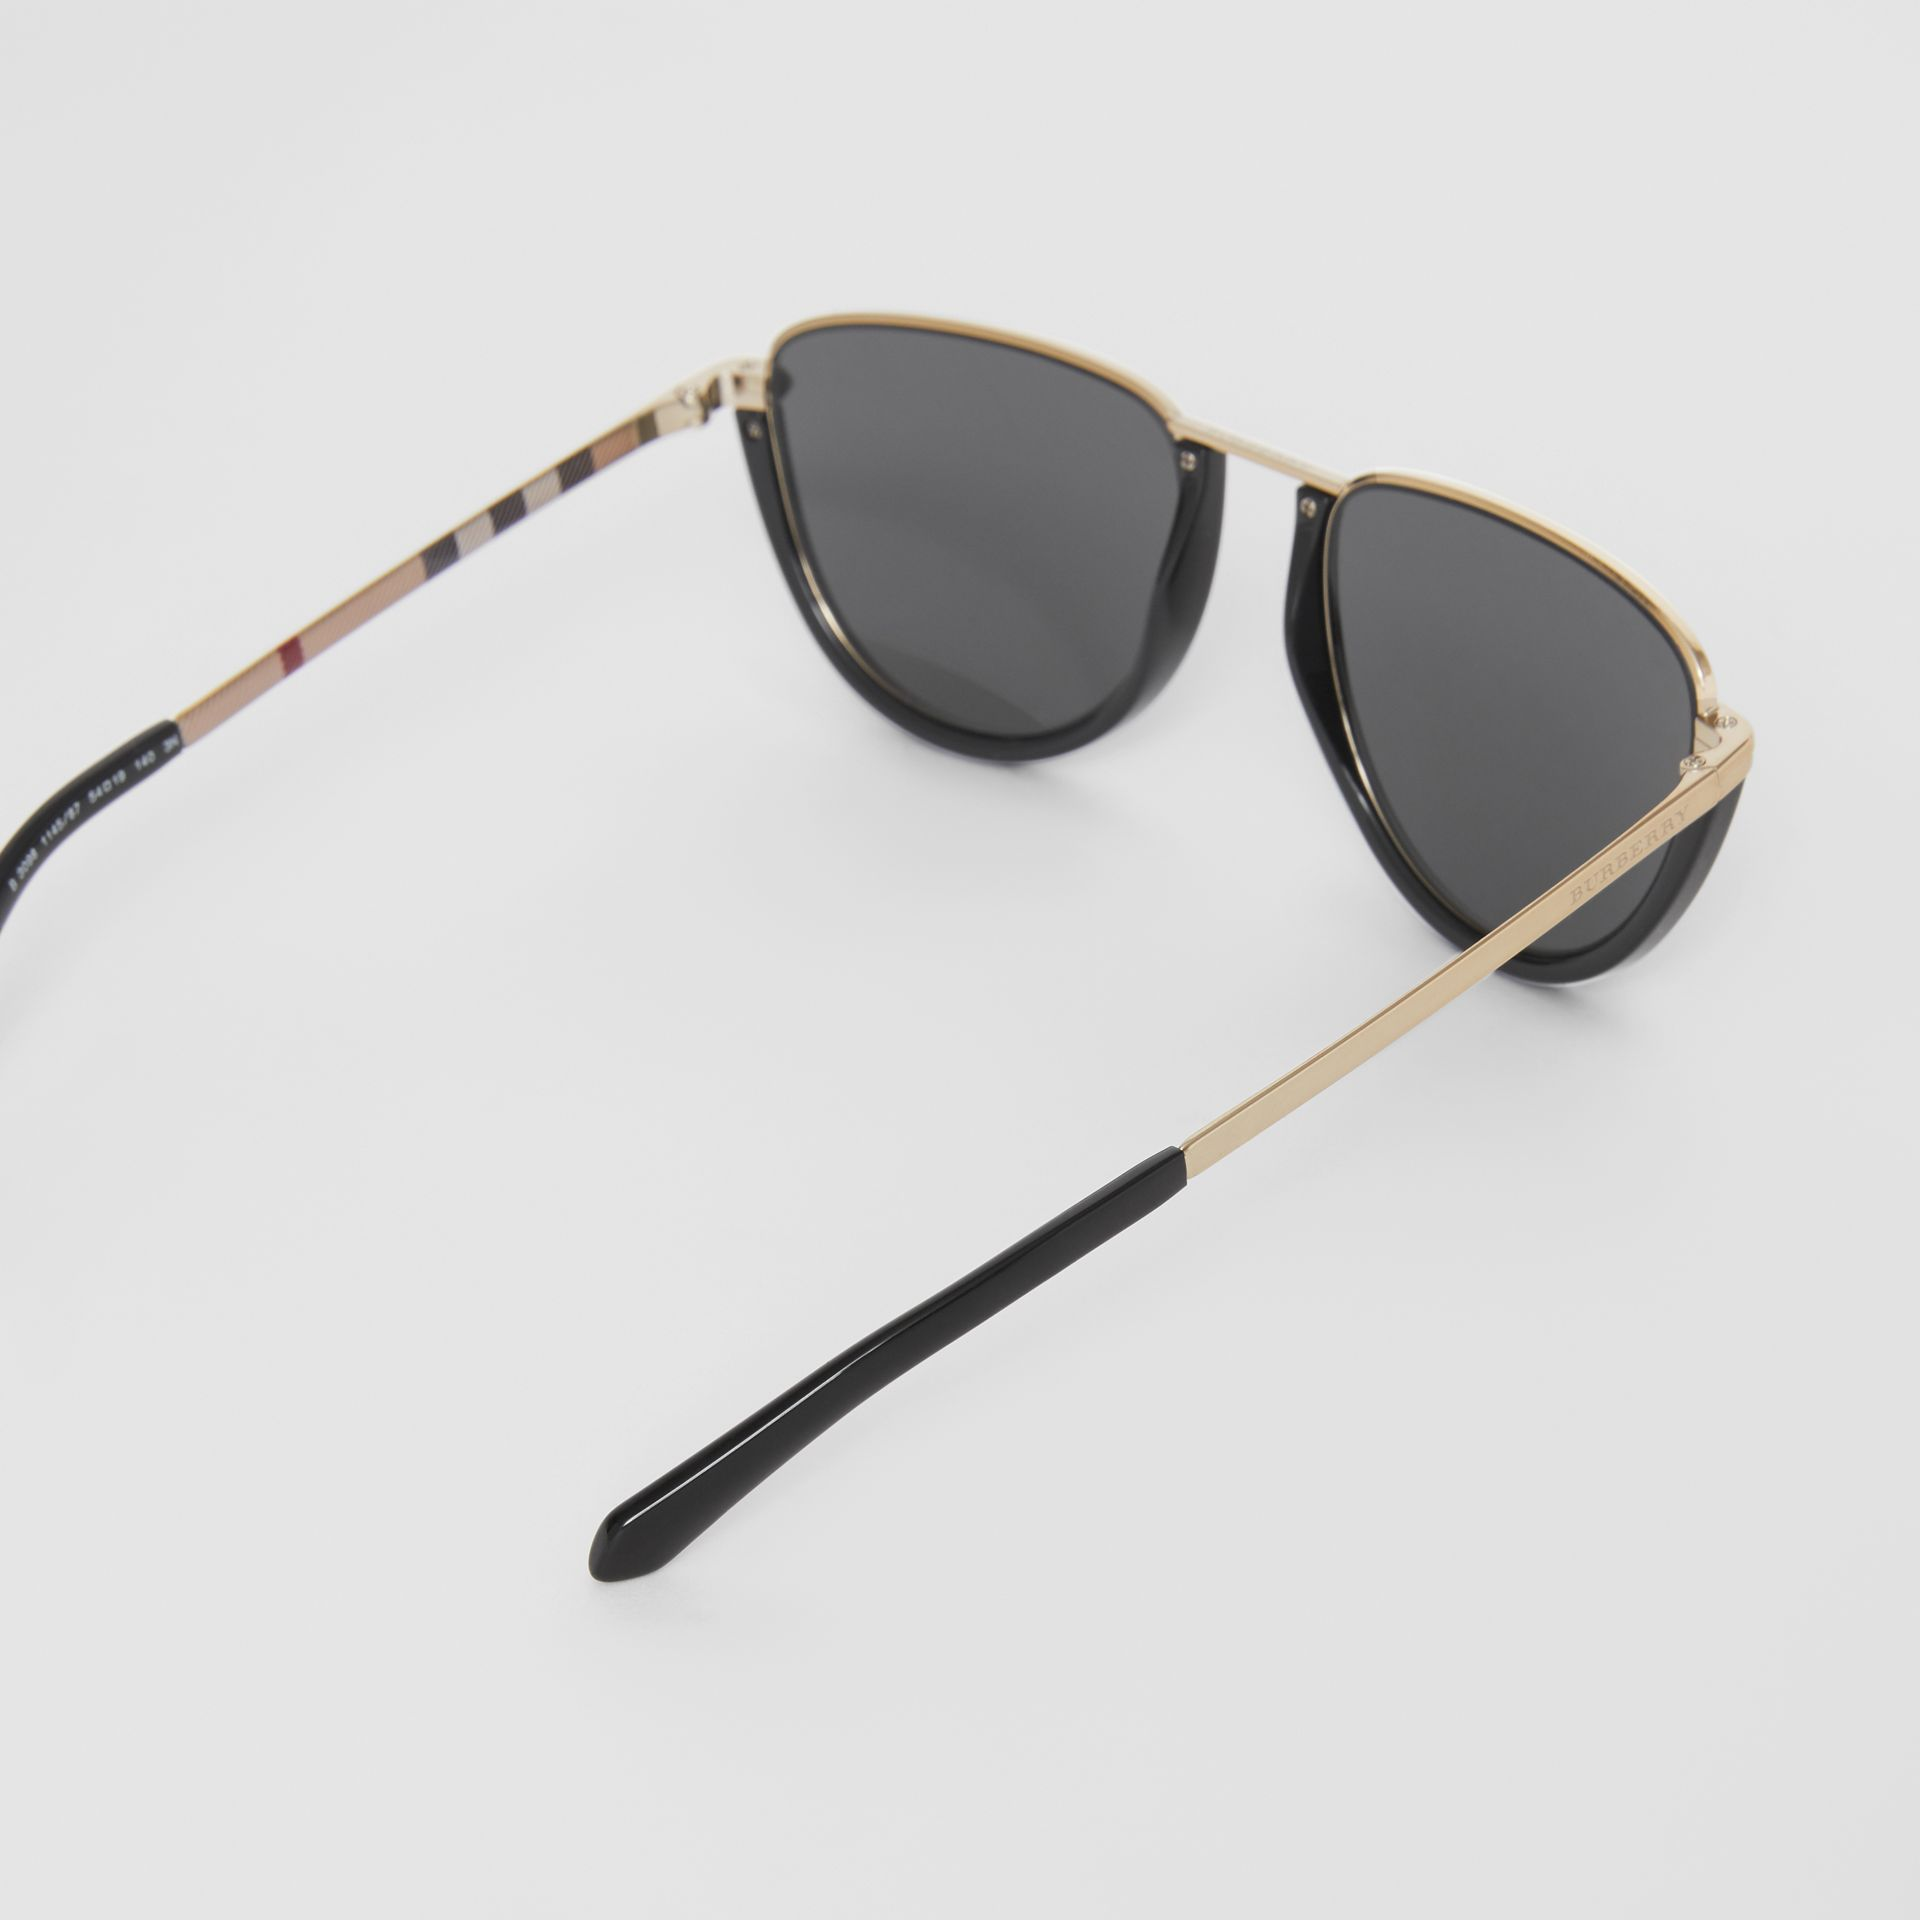 Half Moon Pilot Round Frame Sunglasses in Black - Women | Burberry Singapore - gallery image 4